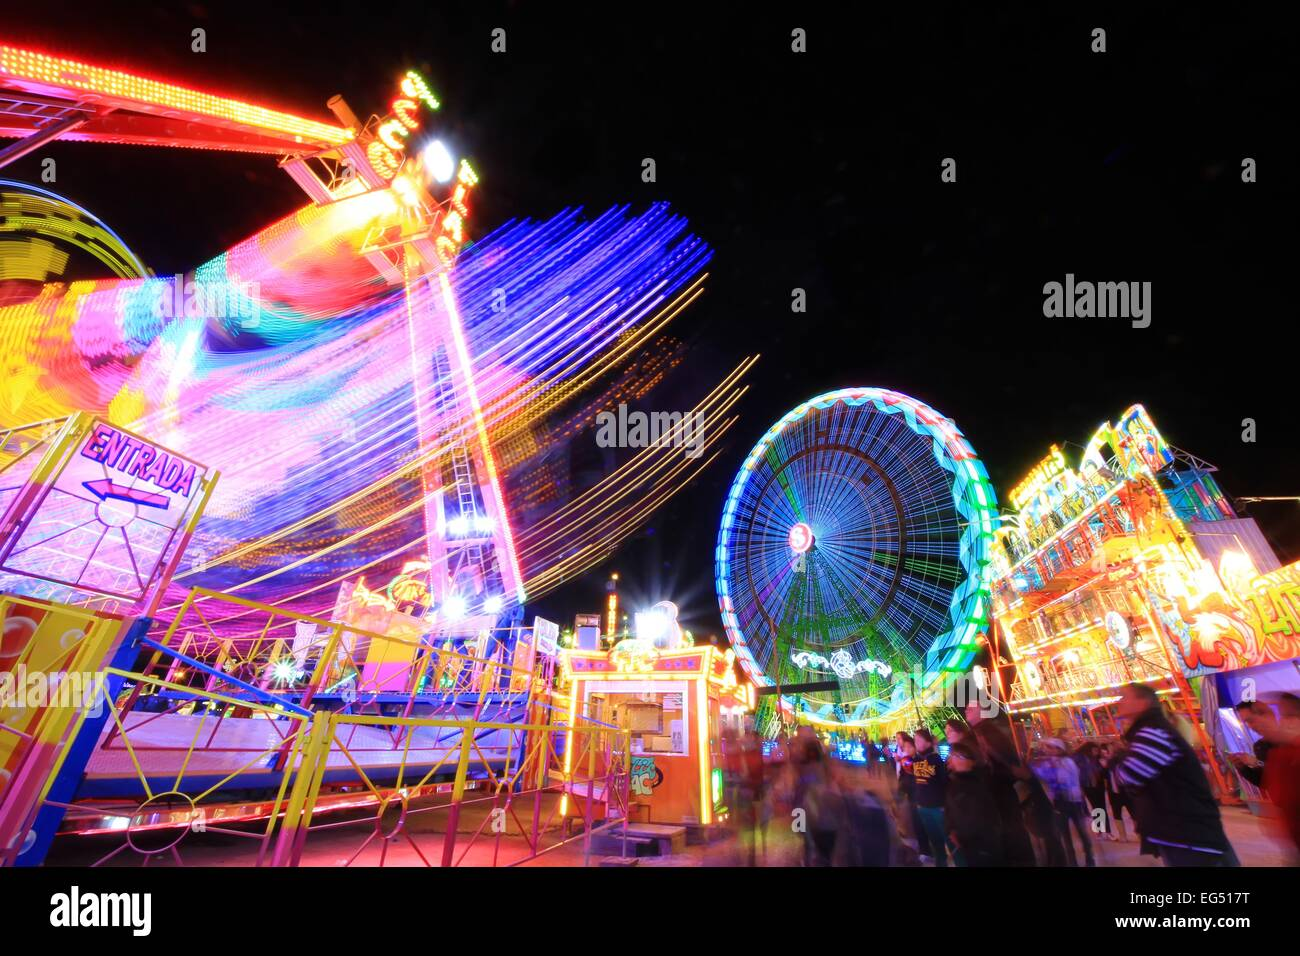 carousel and color games in amusement park at night stock photo